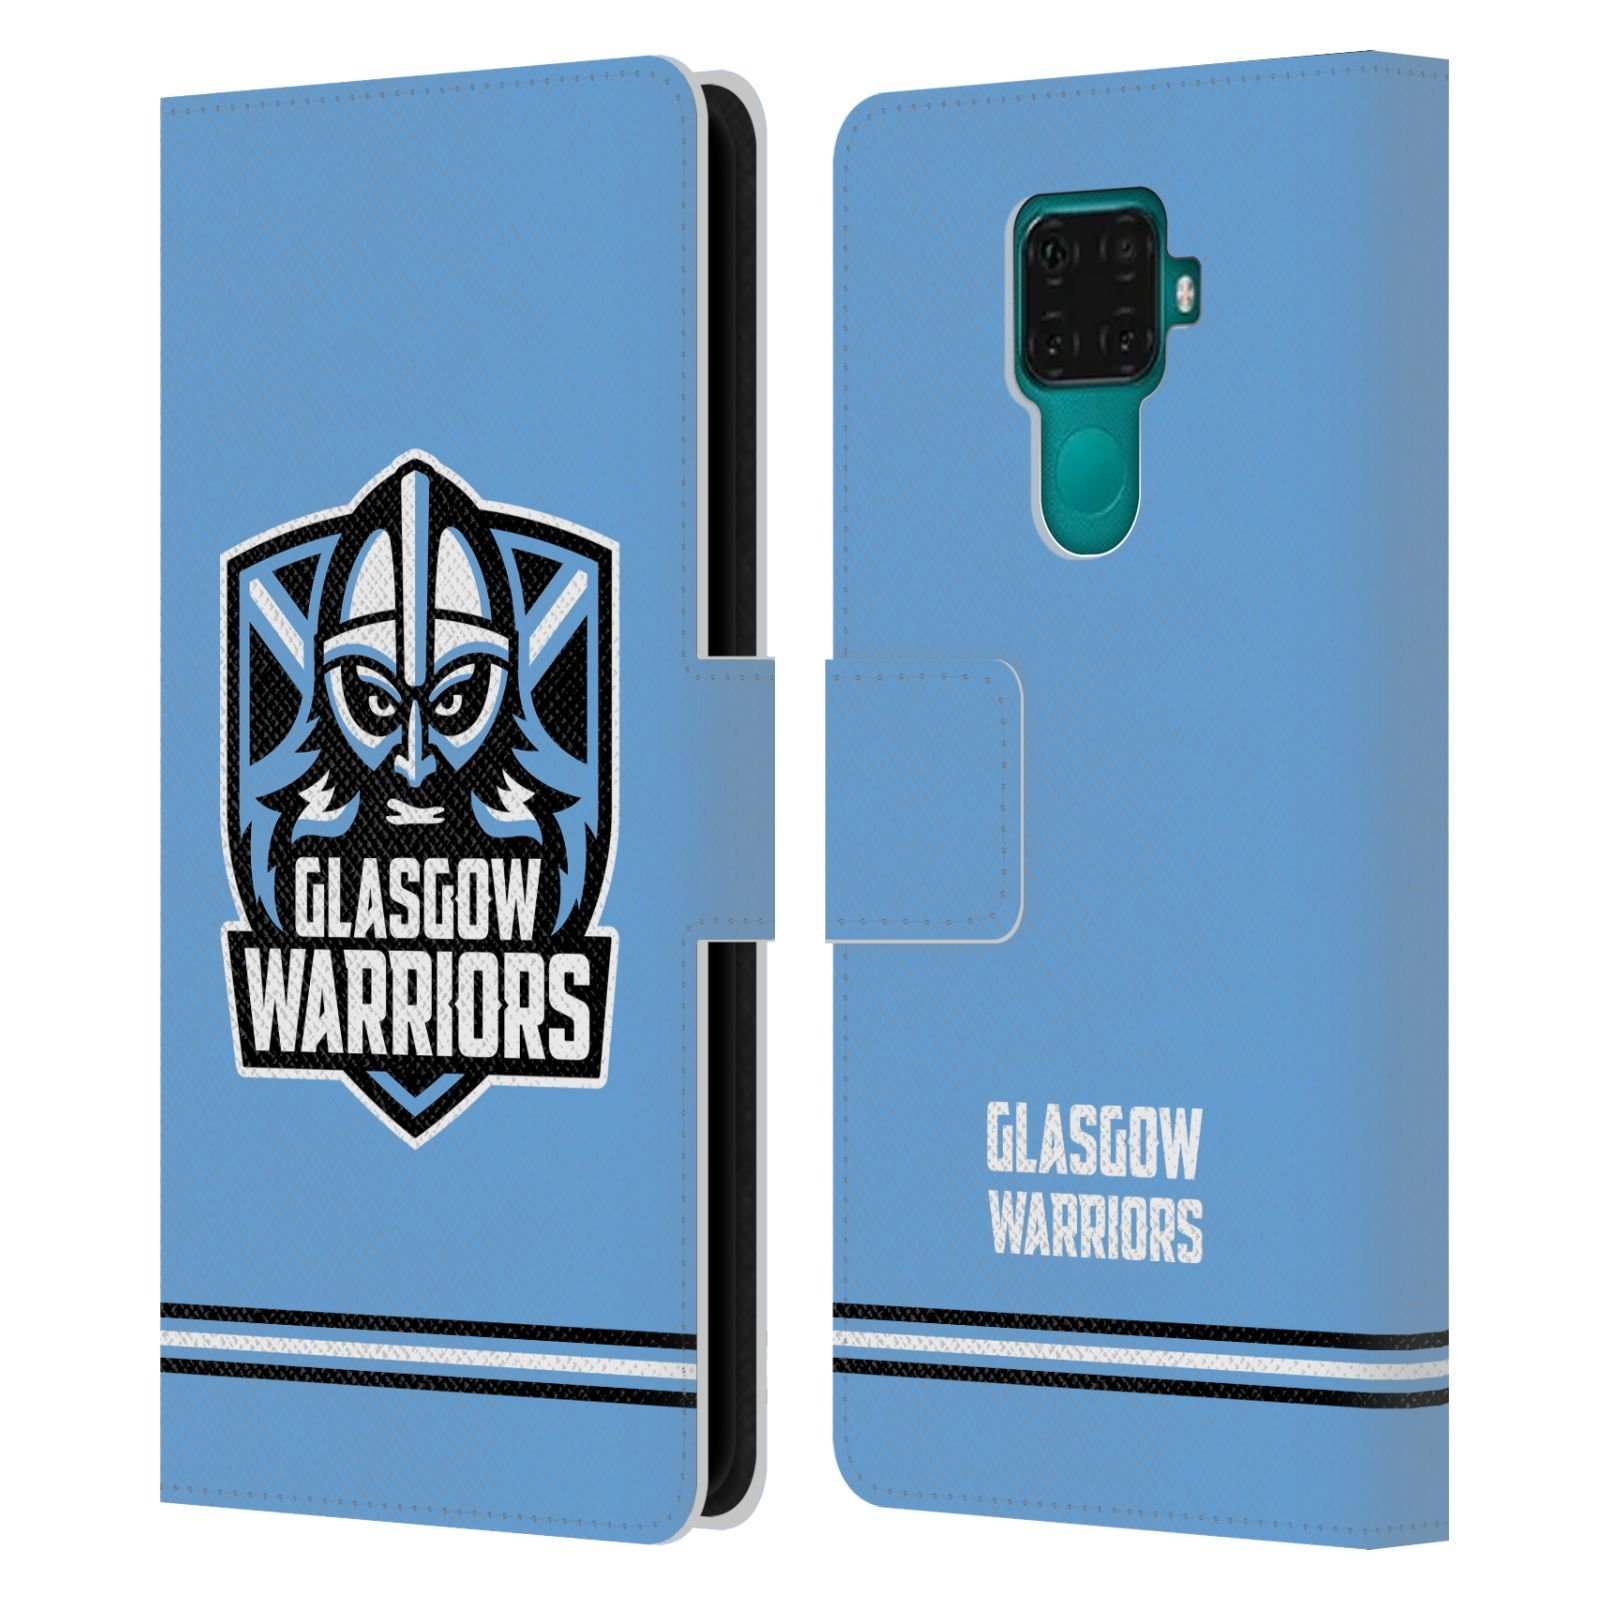 Official Glasgow Warriors 2019/20 Logo Art Stripes Blue Leather Book Wallet Case For Huawei Nova 5i Pro/Mate 30 Lite